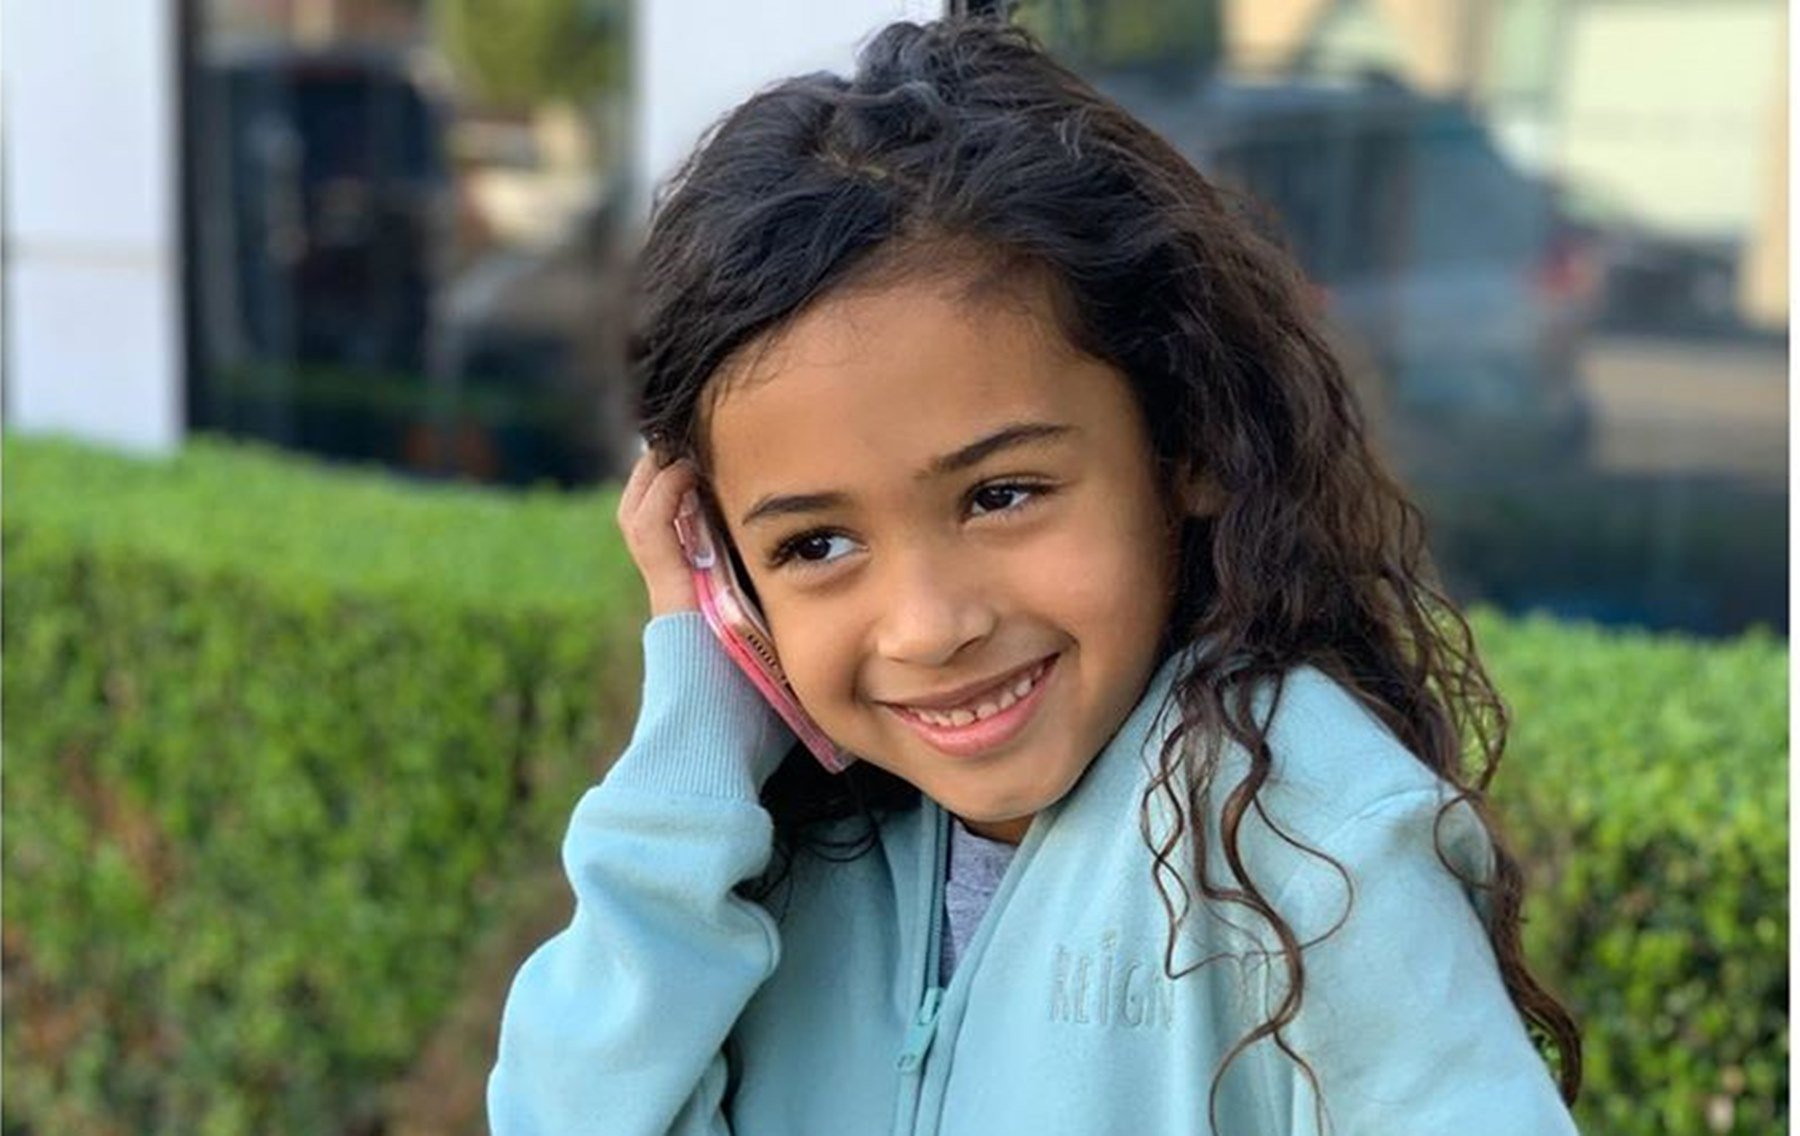 Chris Brown's Daughter Royalty Shows Off Her Singing Talent And Sass In Cute Clip! - Celebrity Insider